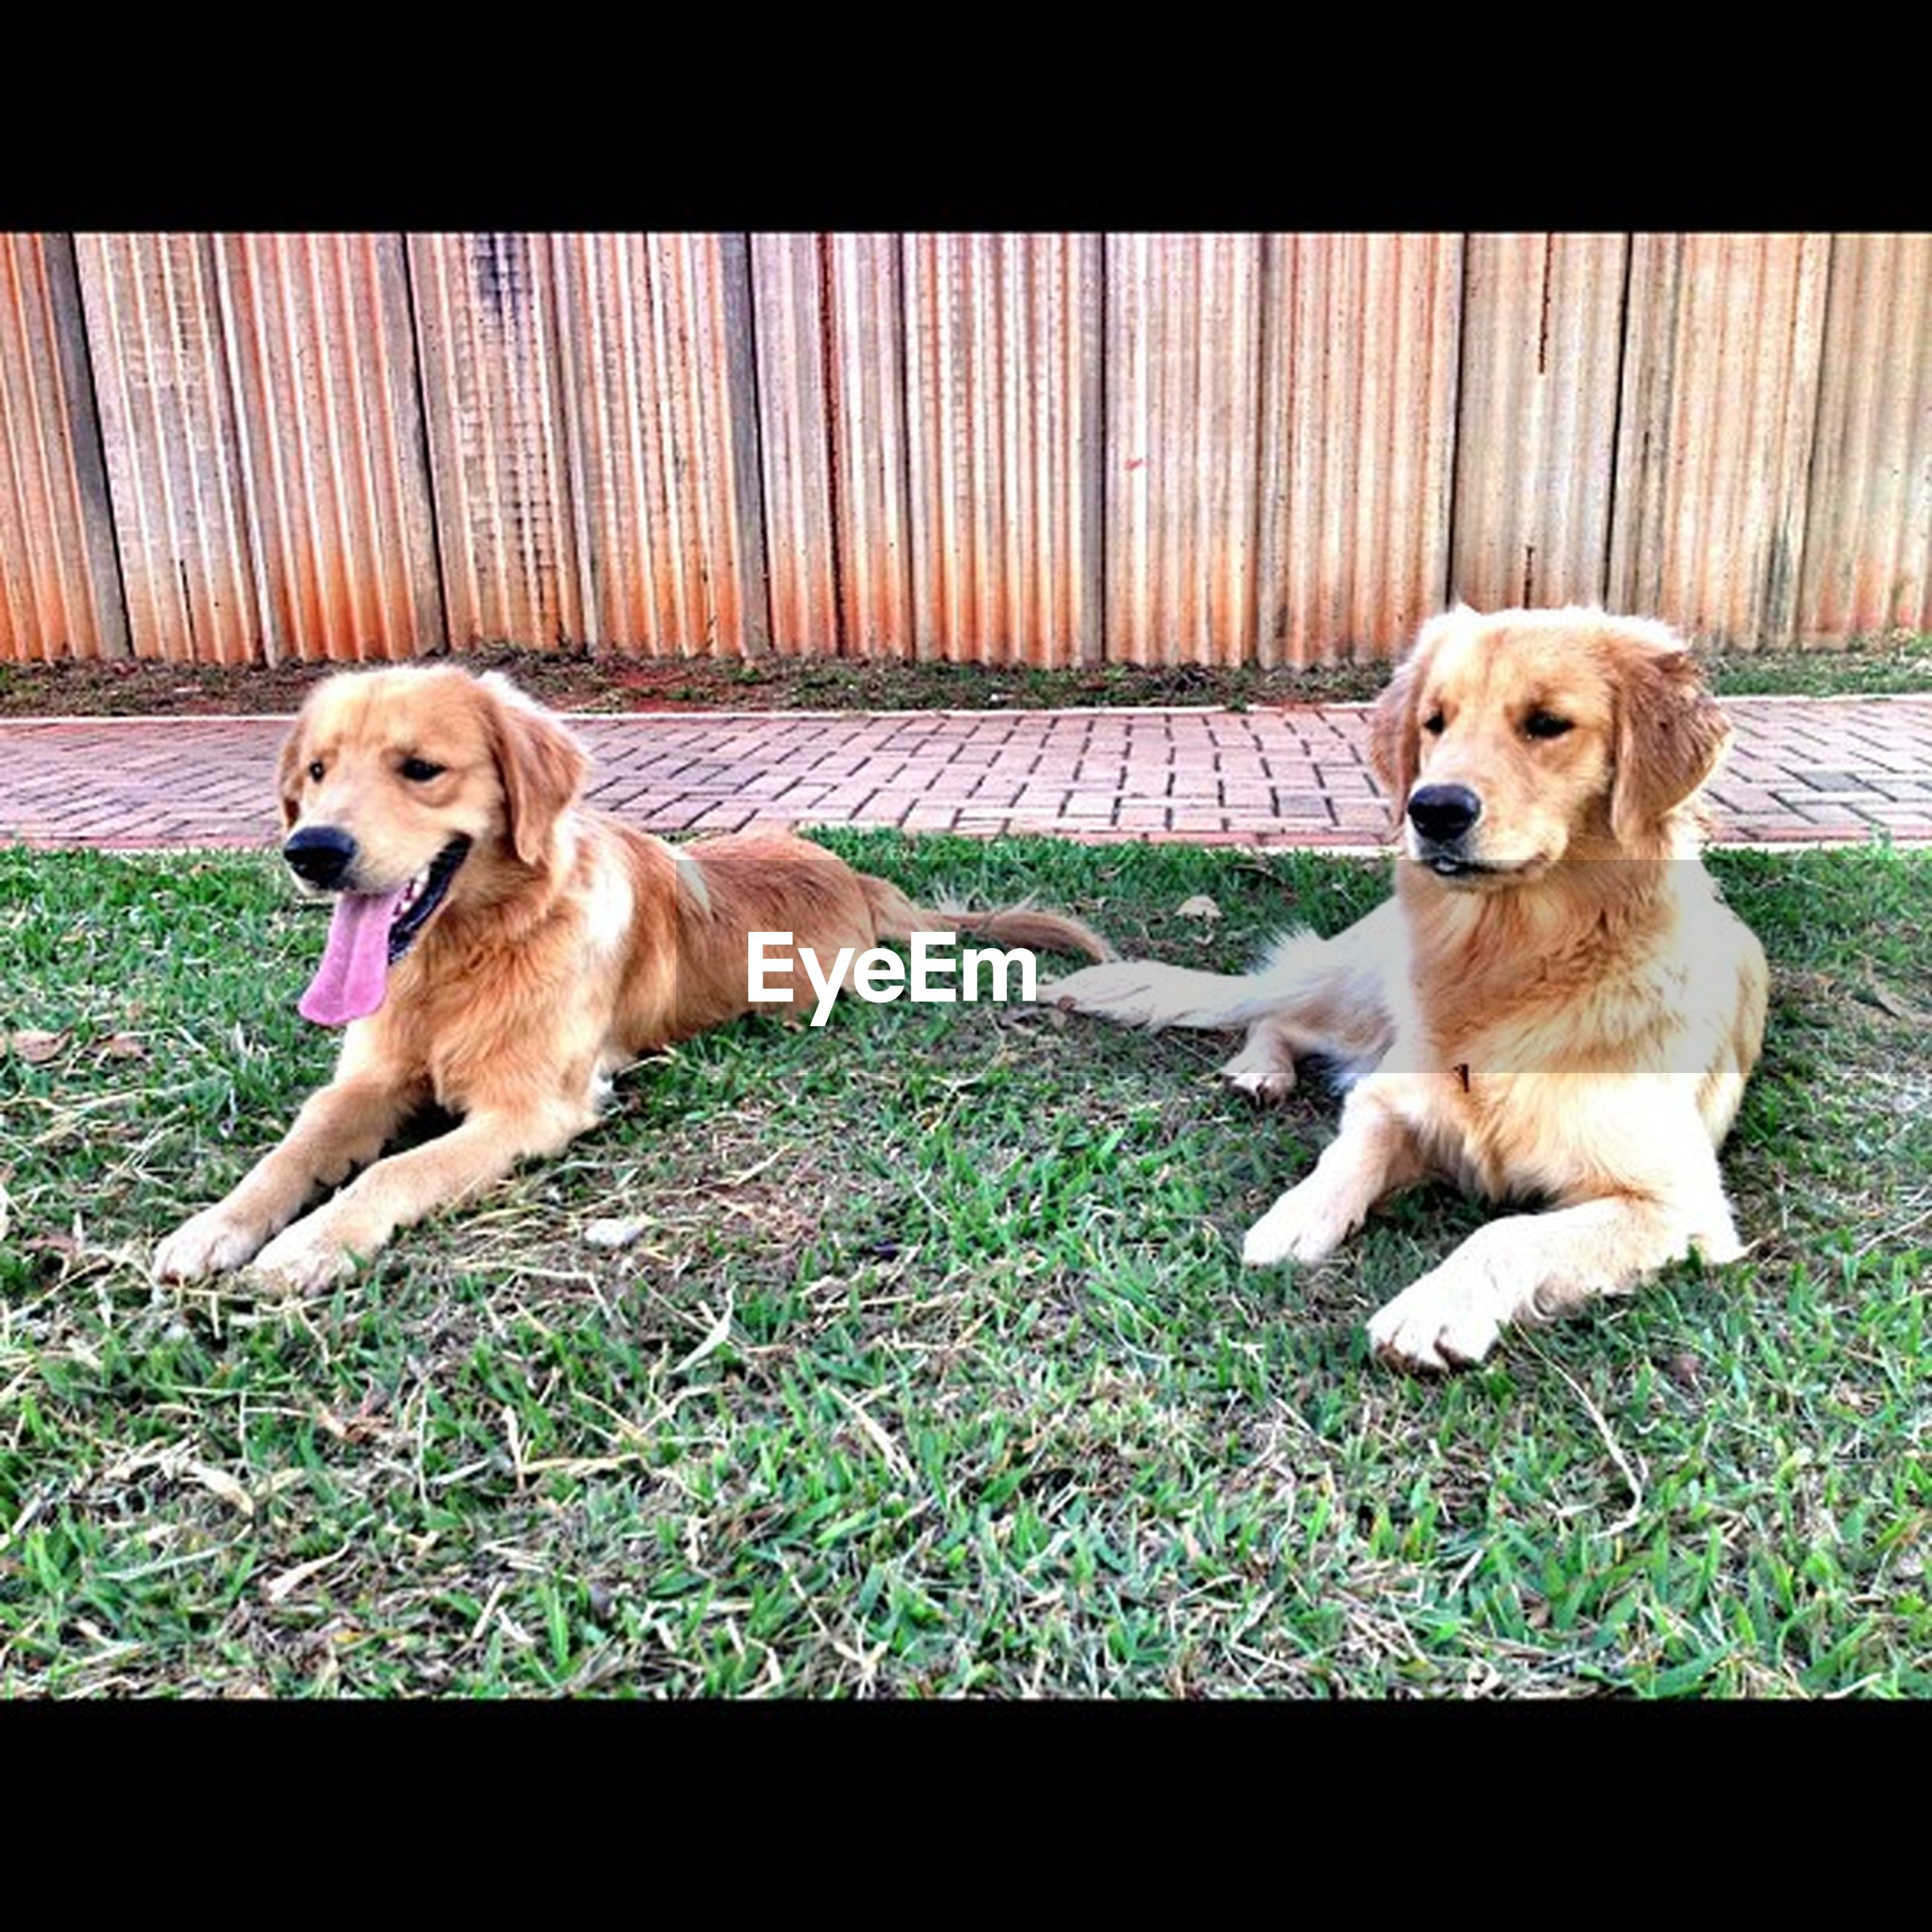 dog, pets, animal themes, domestic animals, mammal, one animal, pet collar, full length, sitting, two animals, grass, relaxation, high angle view, no people, looking at camera, outdoors, day, field, canine, zoology